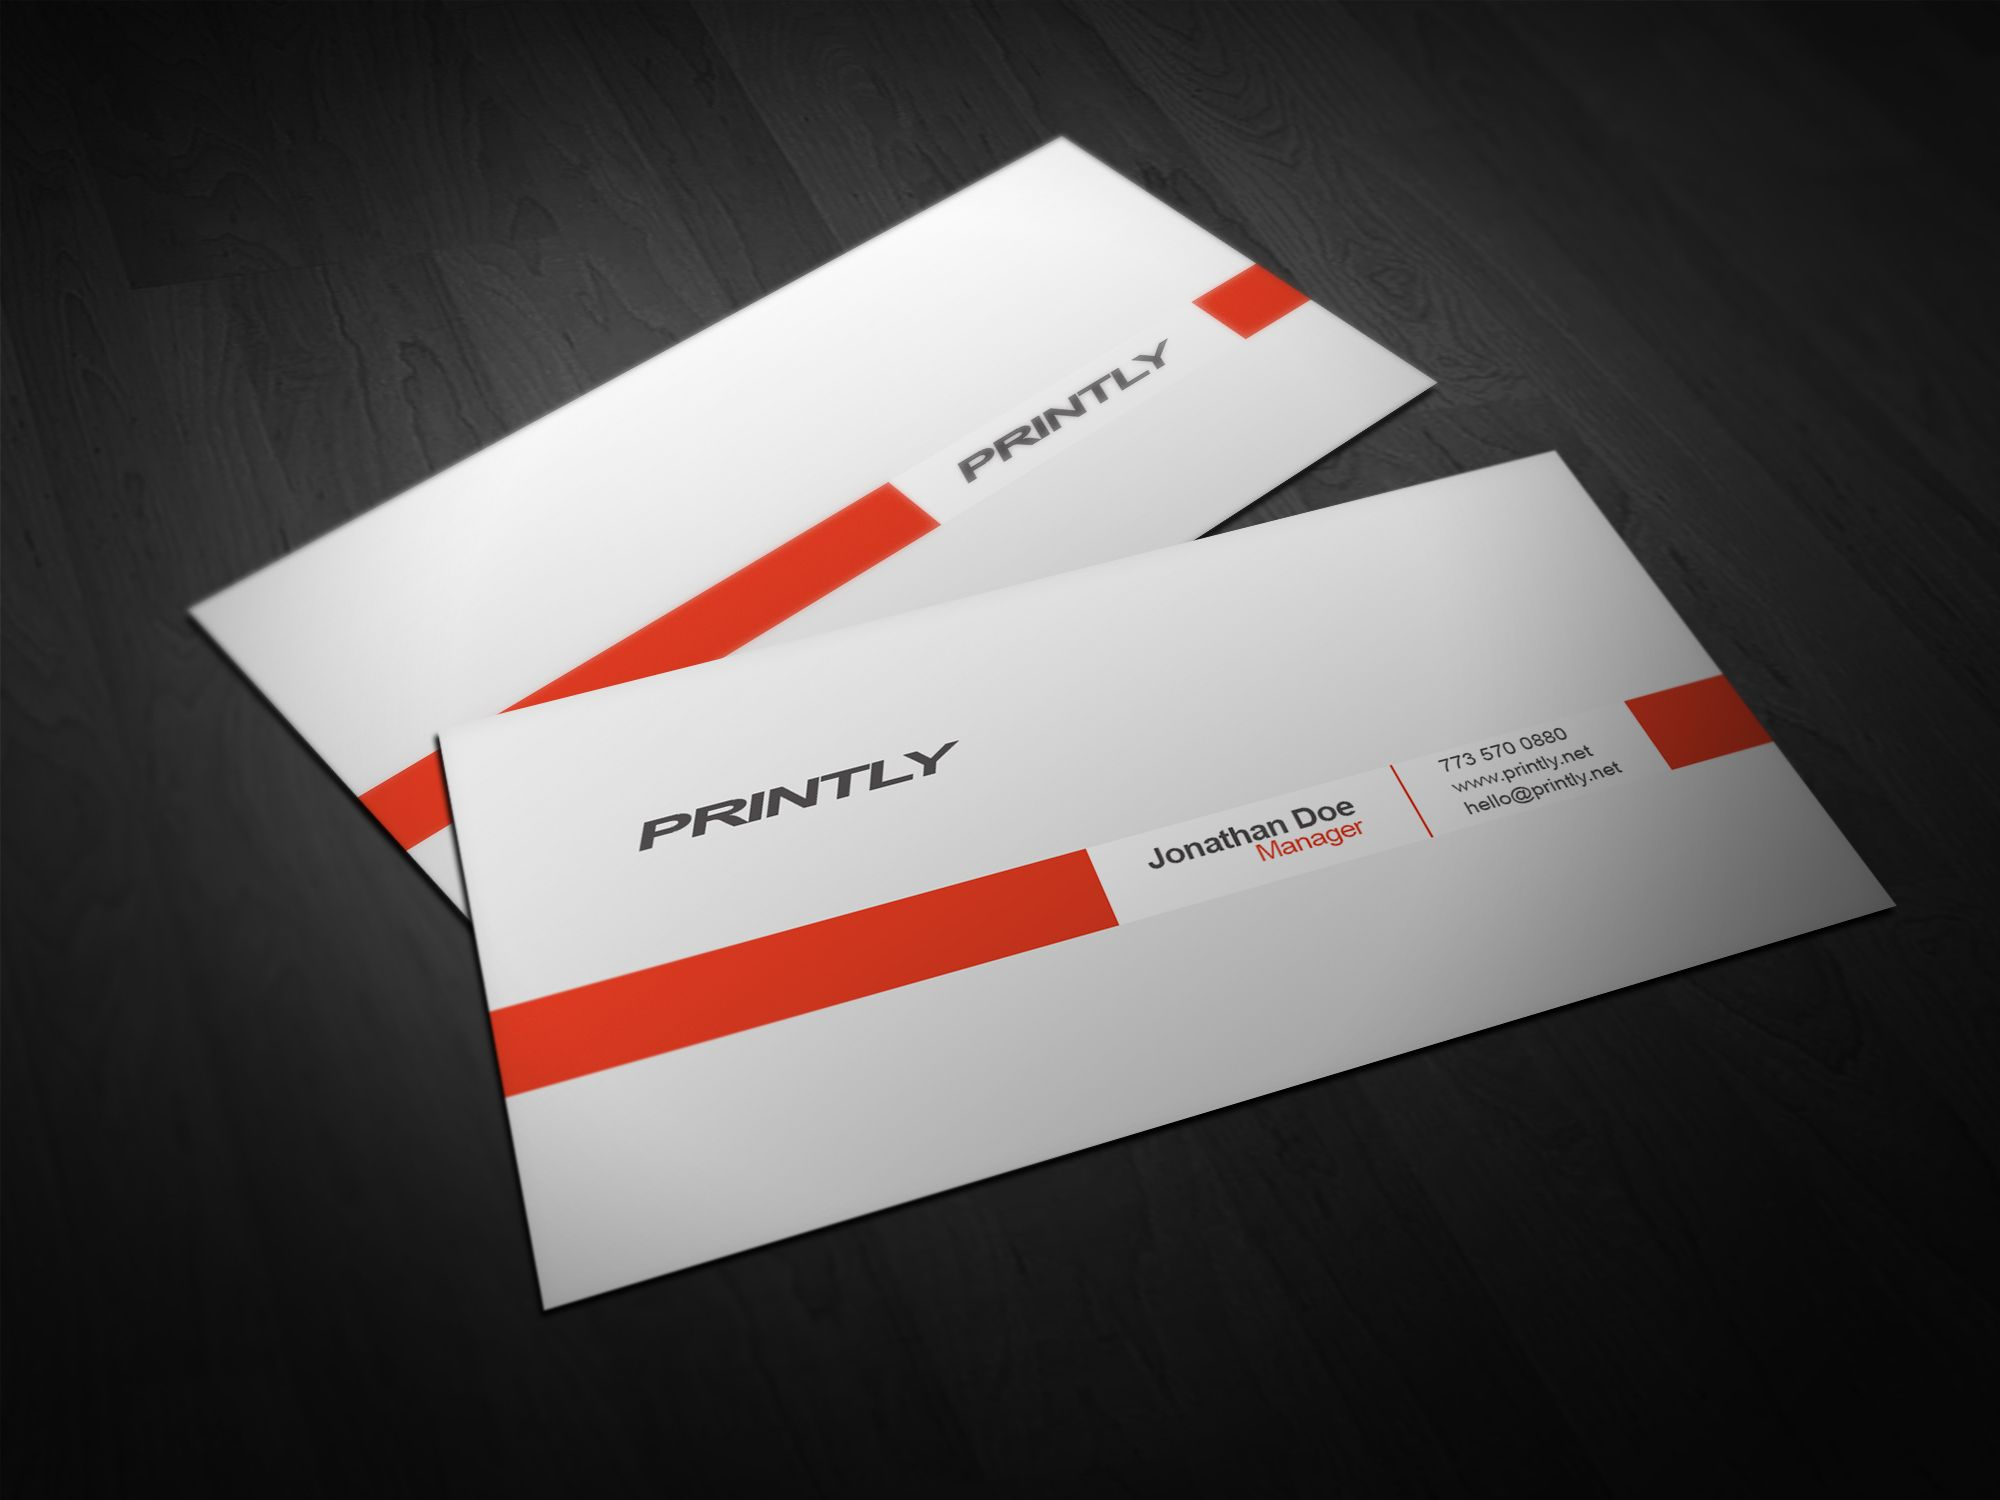 Free business card templates gidiyedformapolitica free business card templates accmission Images